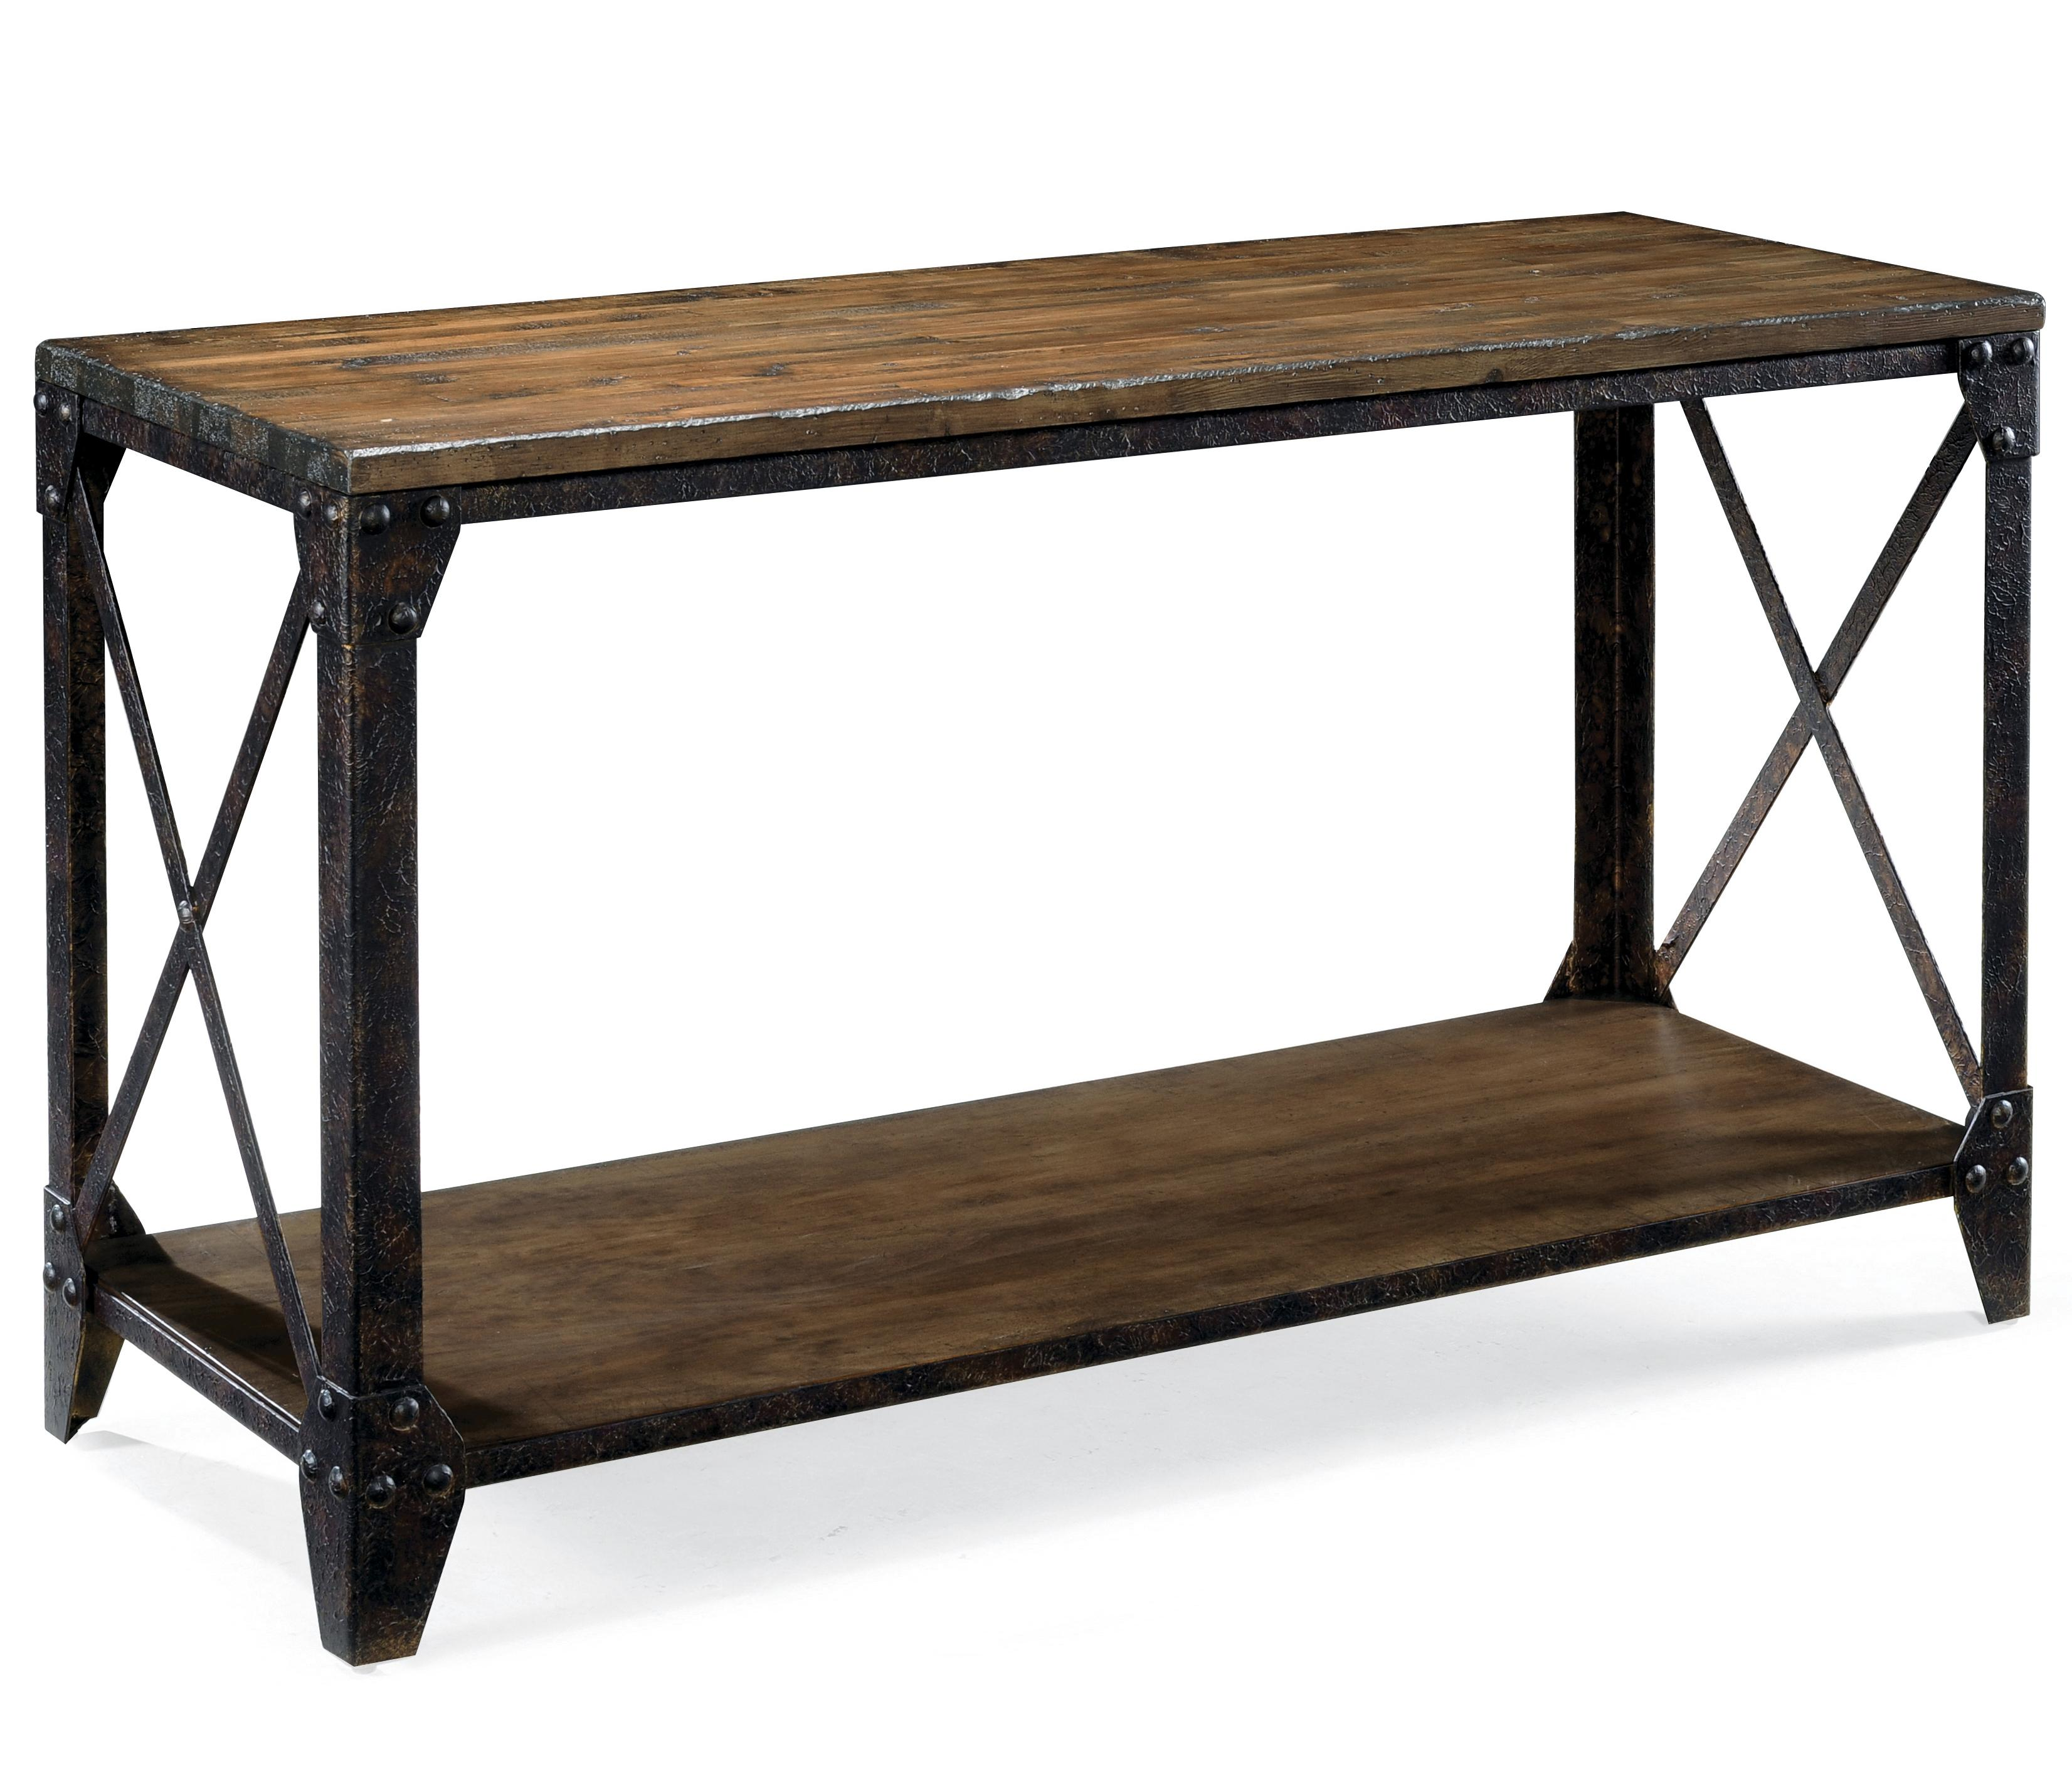 Pinebrook rectangular sofa table with rustic iron legs by Metal console table